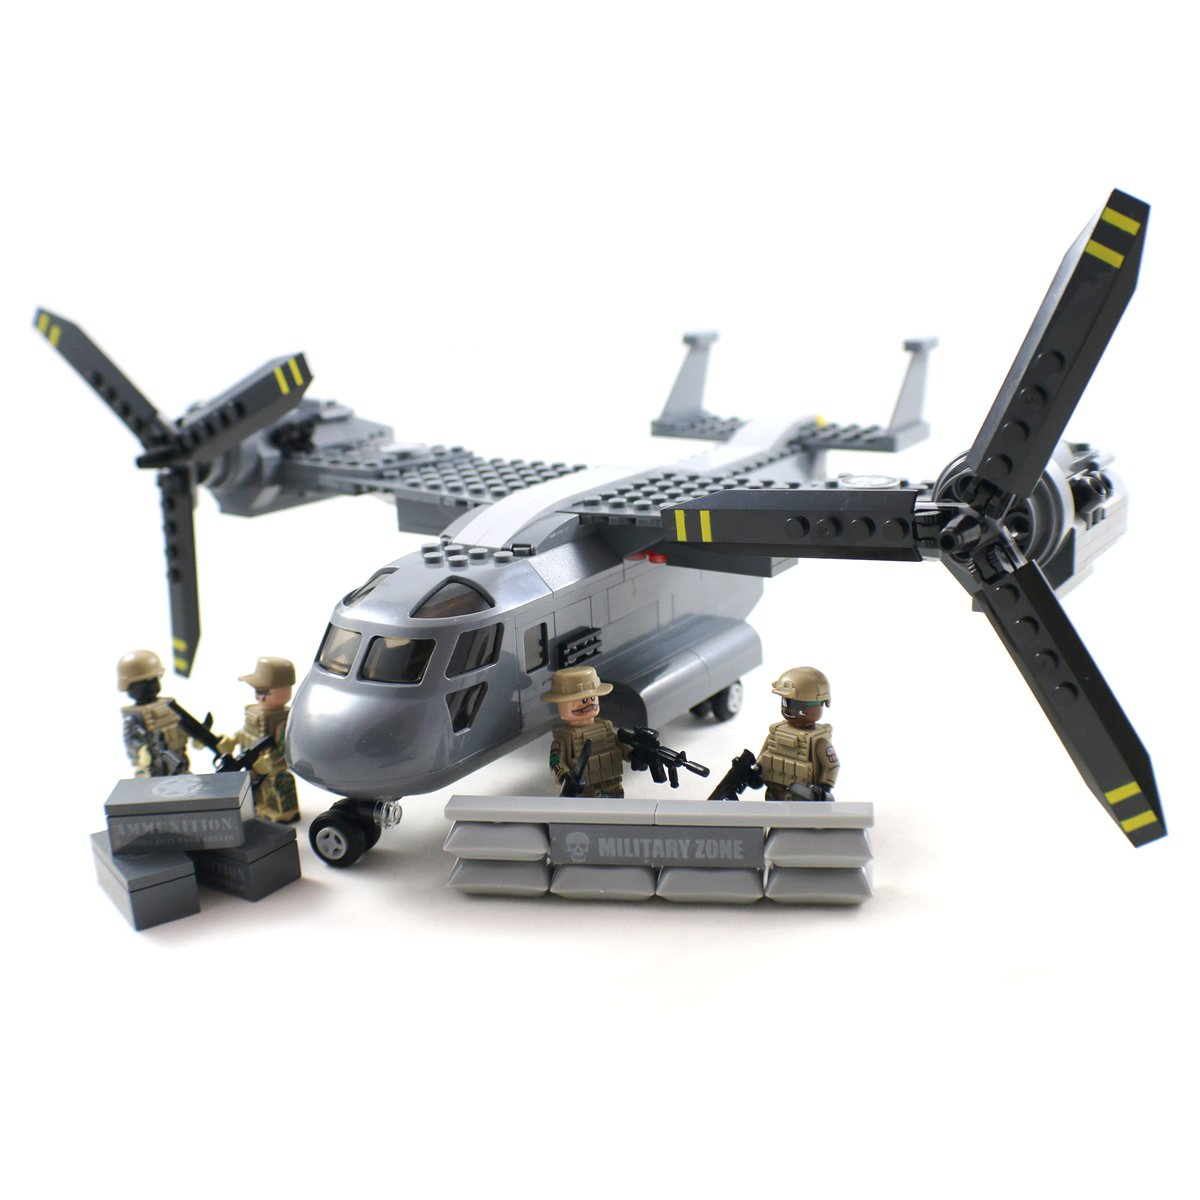 Buy V 22 Osprey Tiltrotor Military Aircraft And Army Soldiers Engine Diagram Building Block Toy By Chenghai Plastic Toys Online At Low Prices In India